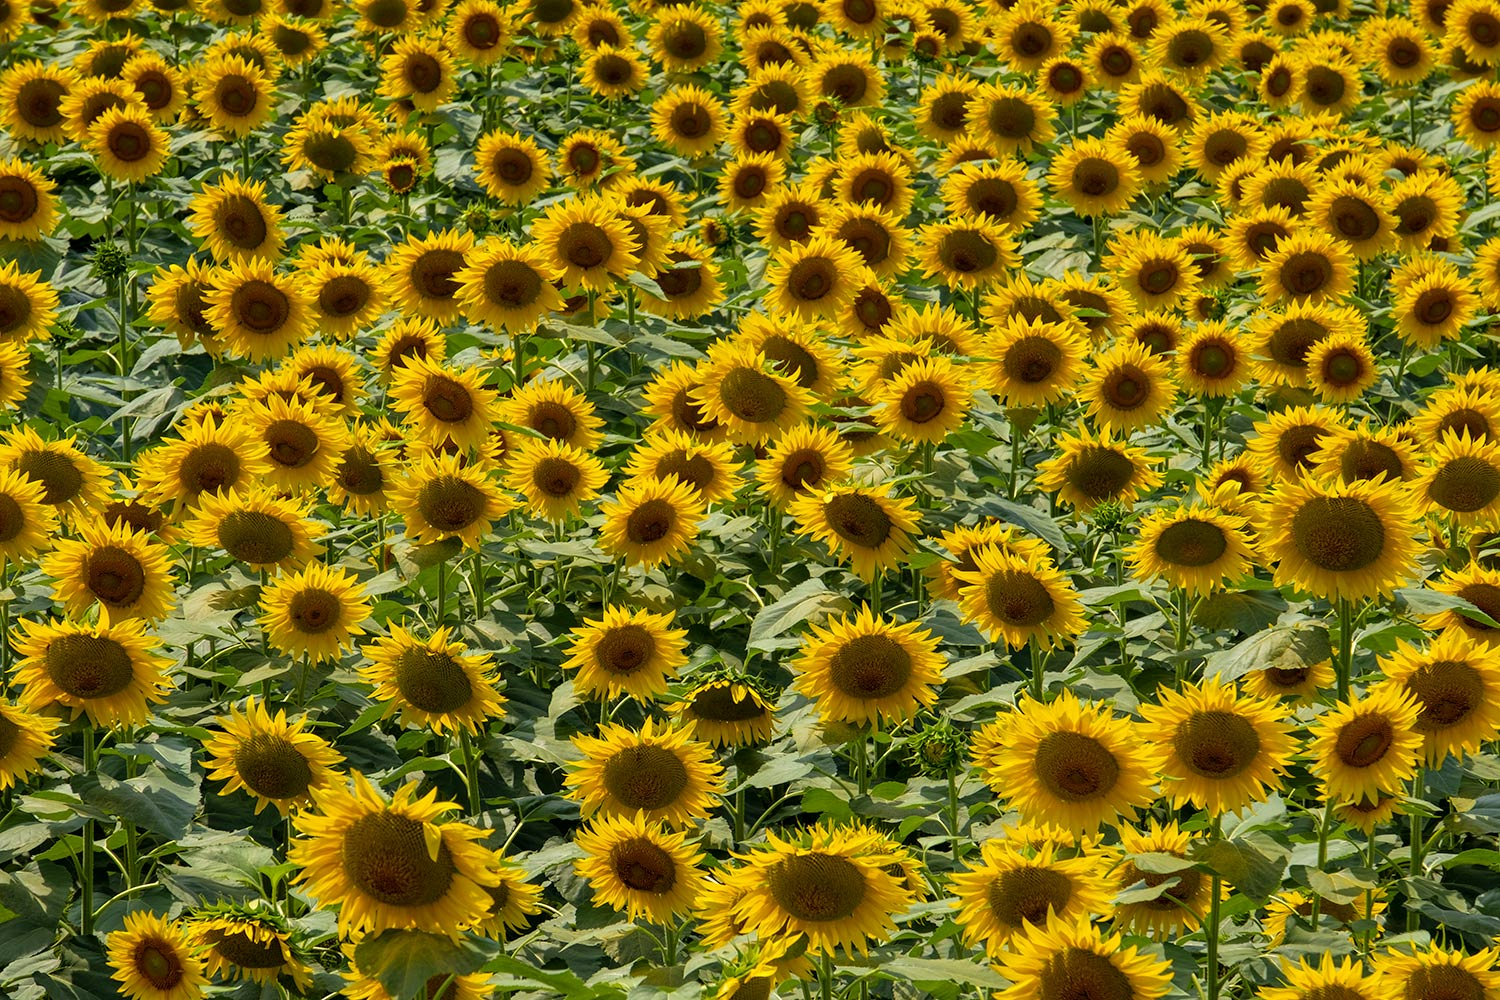 A sea of golden headed sunflowers on the outskirts of San Gimignano in the province of Siena, Italy.